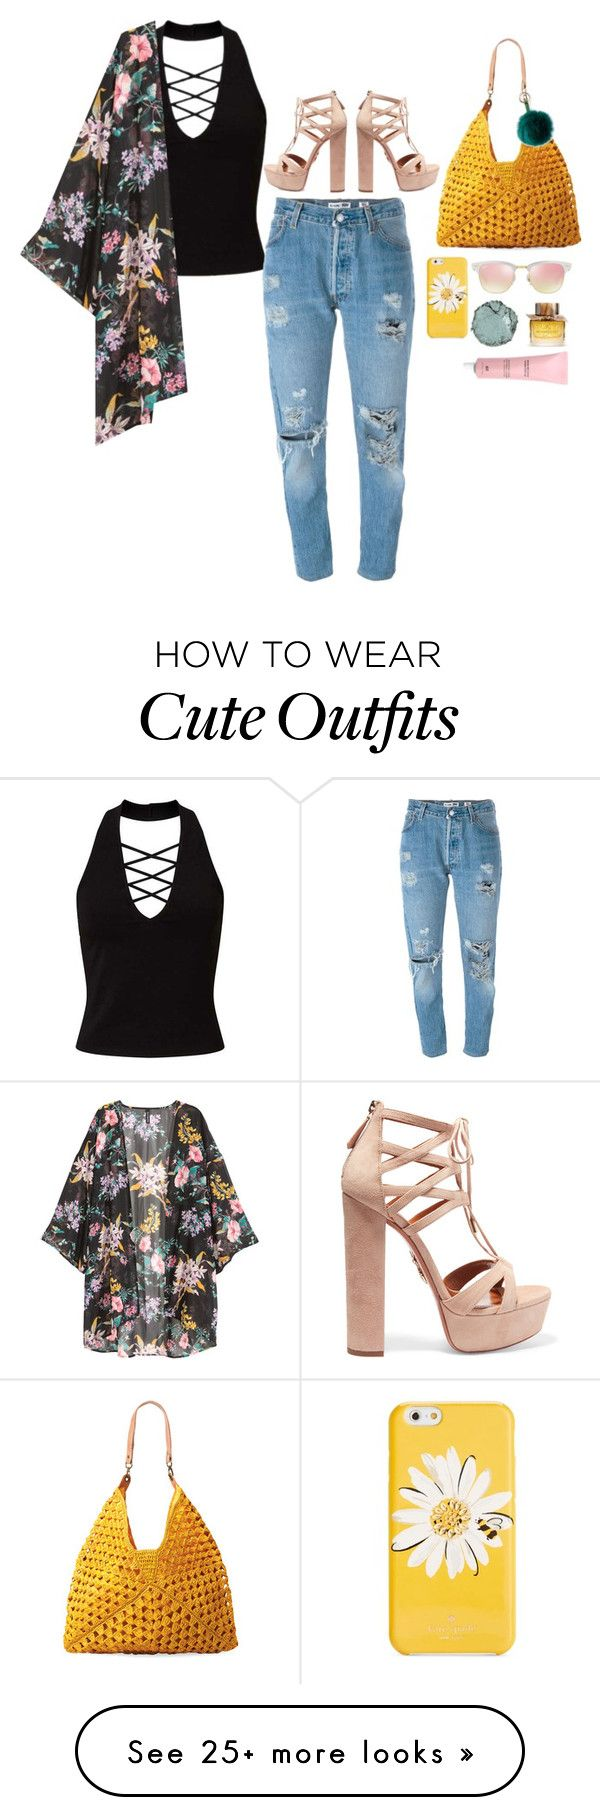 """Cute Summer Style Outfit"" by darling16 on Polyvore featuring Miss Selfridge, Levi's, Aquazzura, Mar y Sol, Kate Spade, Ray-Ban, RAJ, Chantecaille and Burberry"